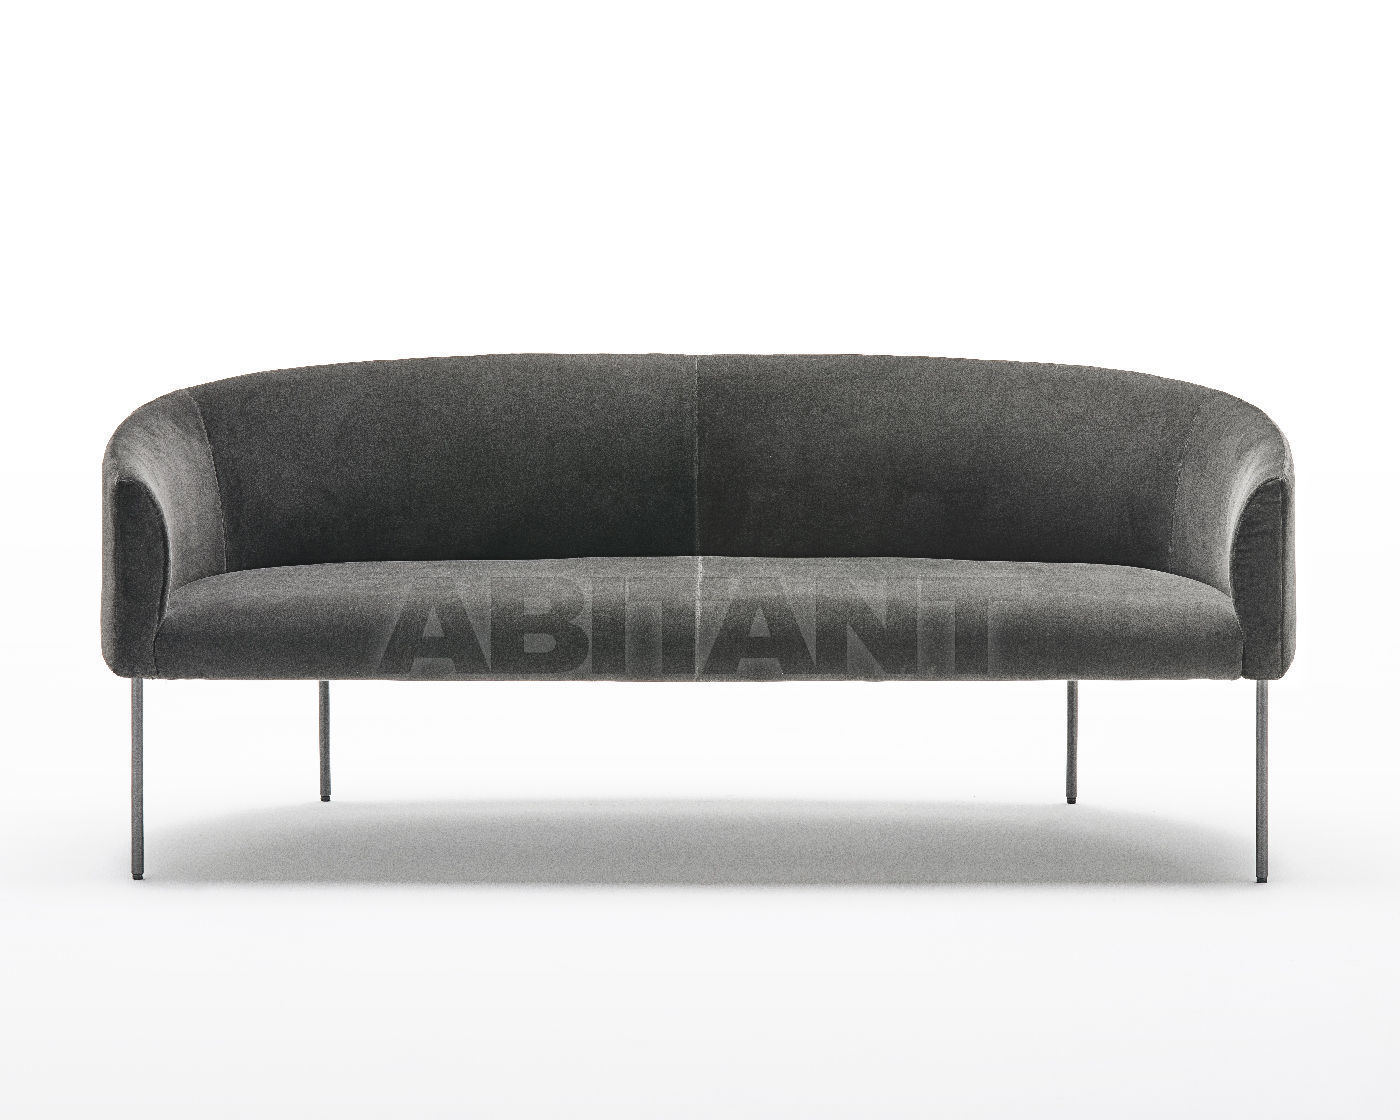 Living Divani Sofa Price Sofa Era Sofa Dark Grey Living Divani Erad180 Buy оrder оnline